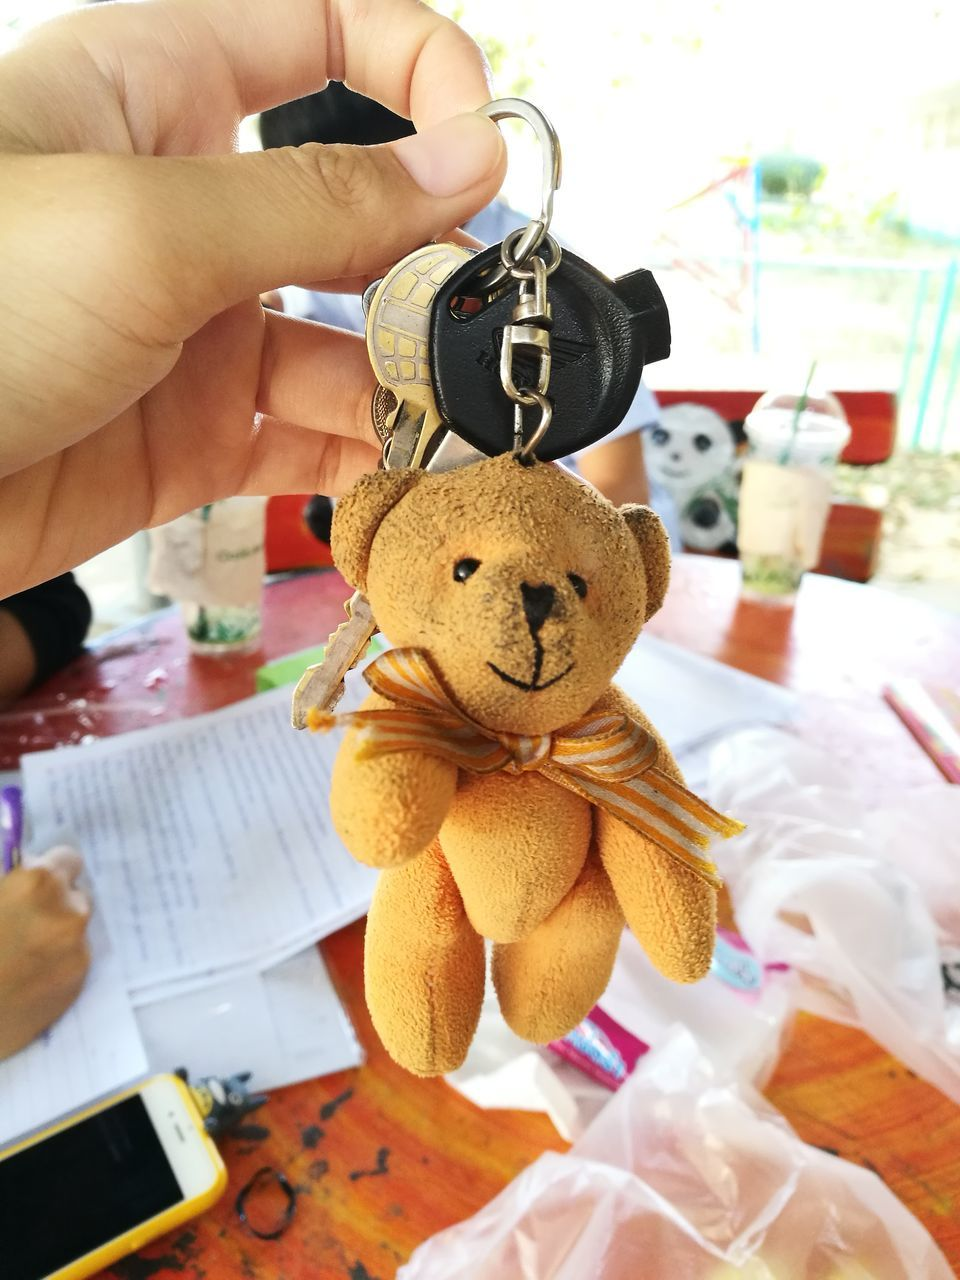 human hand, teddy bear, stuffed toy, toy, one person, human body part, holding, indoors, real people, childhood, close-up, day, people